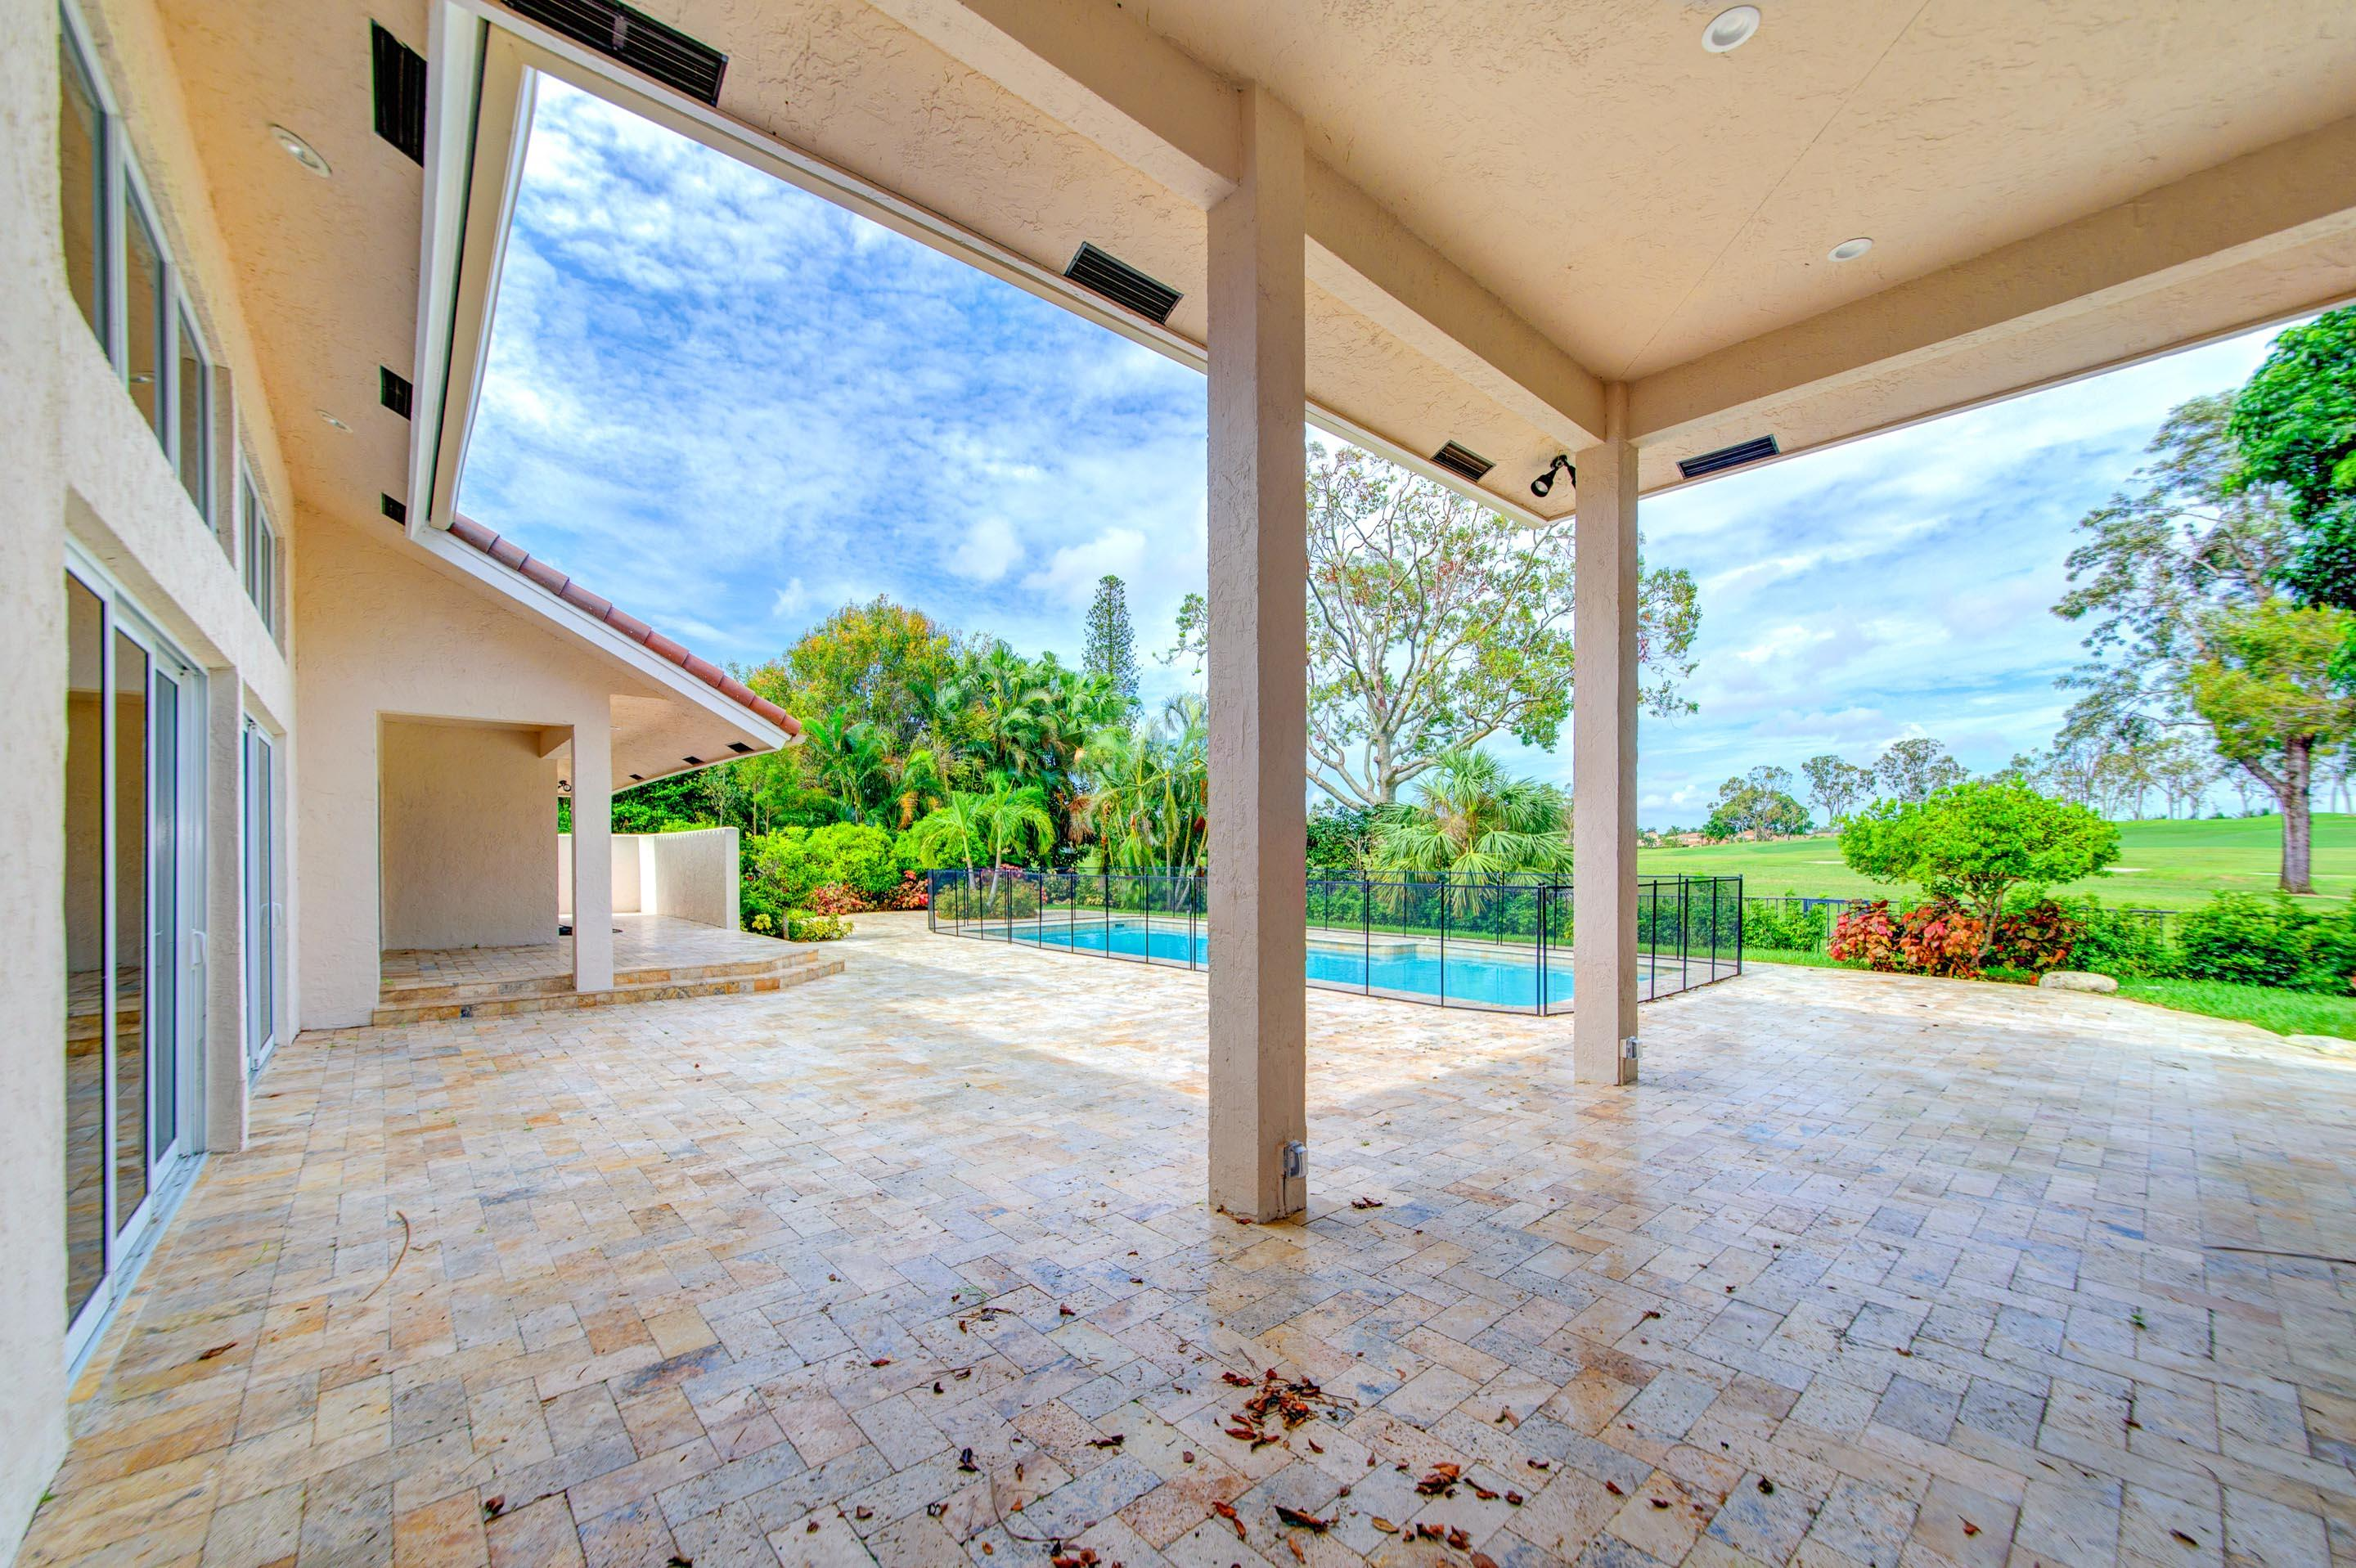 11927 Maidstone Drive, Wellington, Florida 33414, 6 Bedrooms Bedrooms, ,7.2 BathroomsBathrooms,Single Family,For Sale,Palm Beach Polo,Maidstone,1,RX-10522285